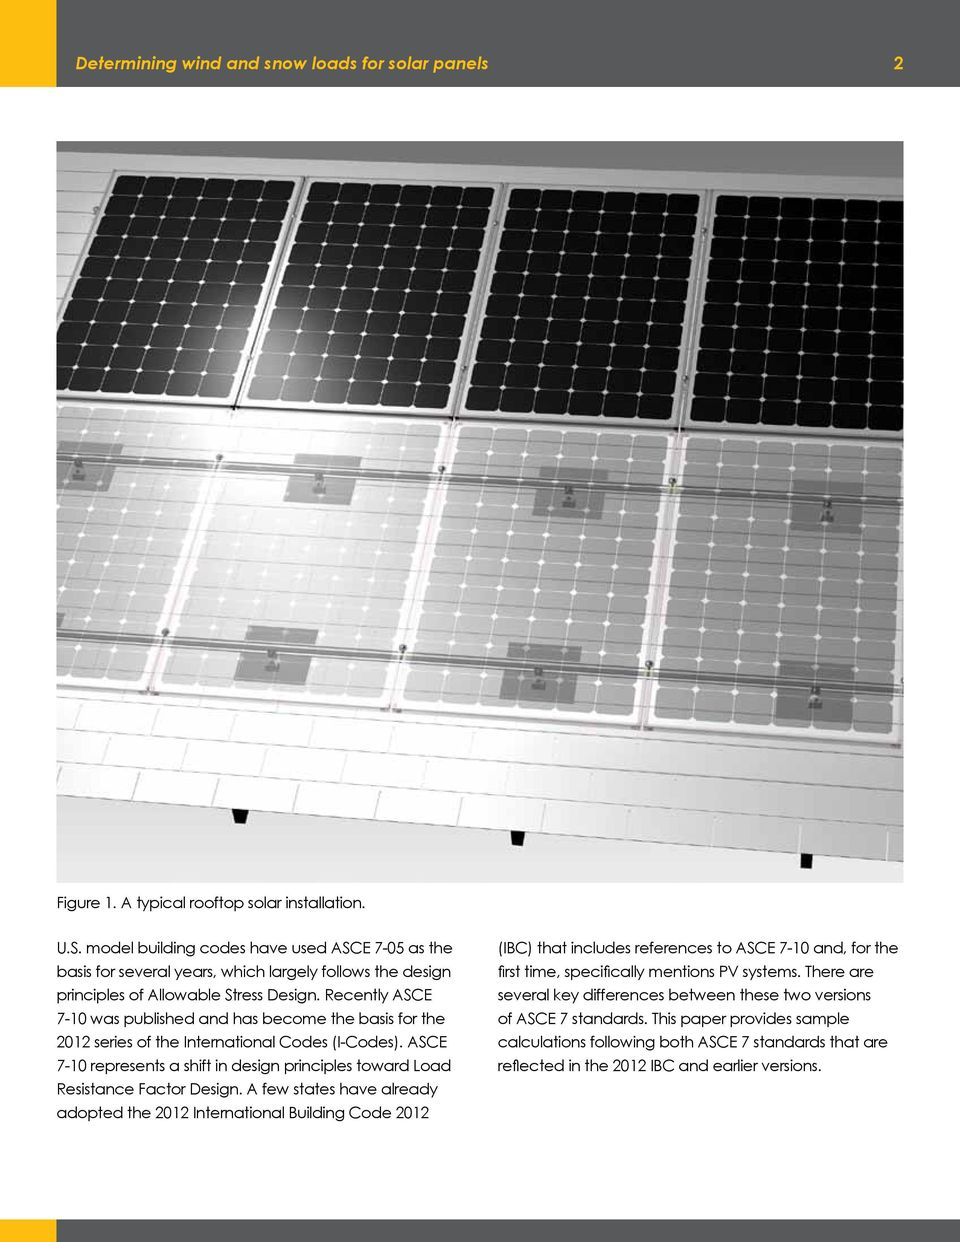 Determining wind and snow loads for solar panels america s authority recently asce 7 10 was published and has become the basis for the 2012 series fandeluxe Choice Image